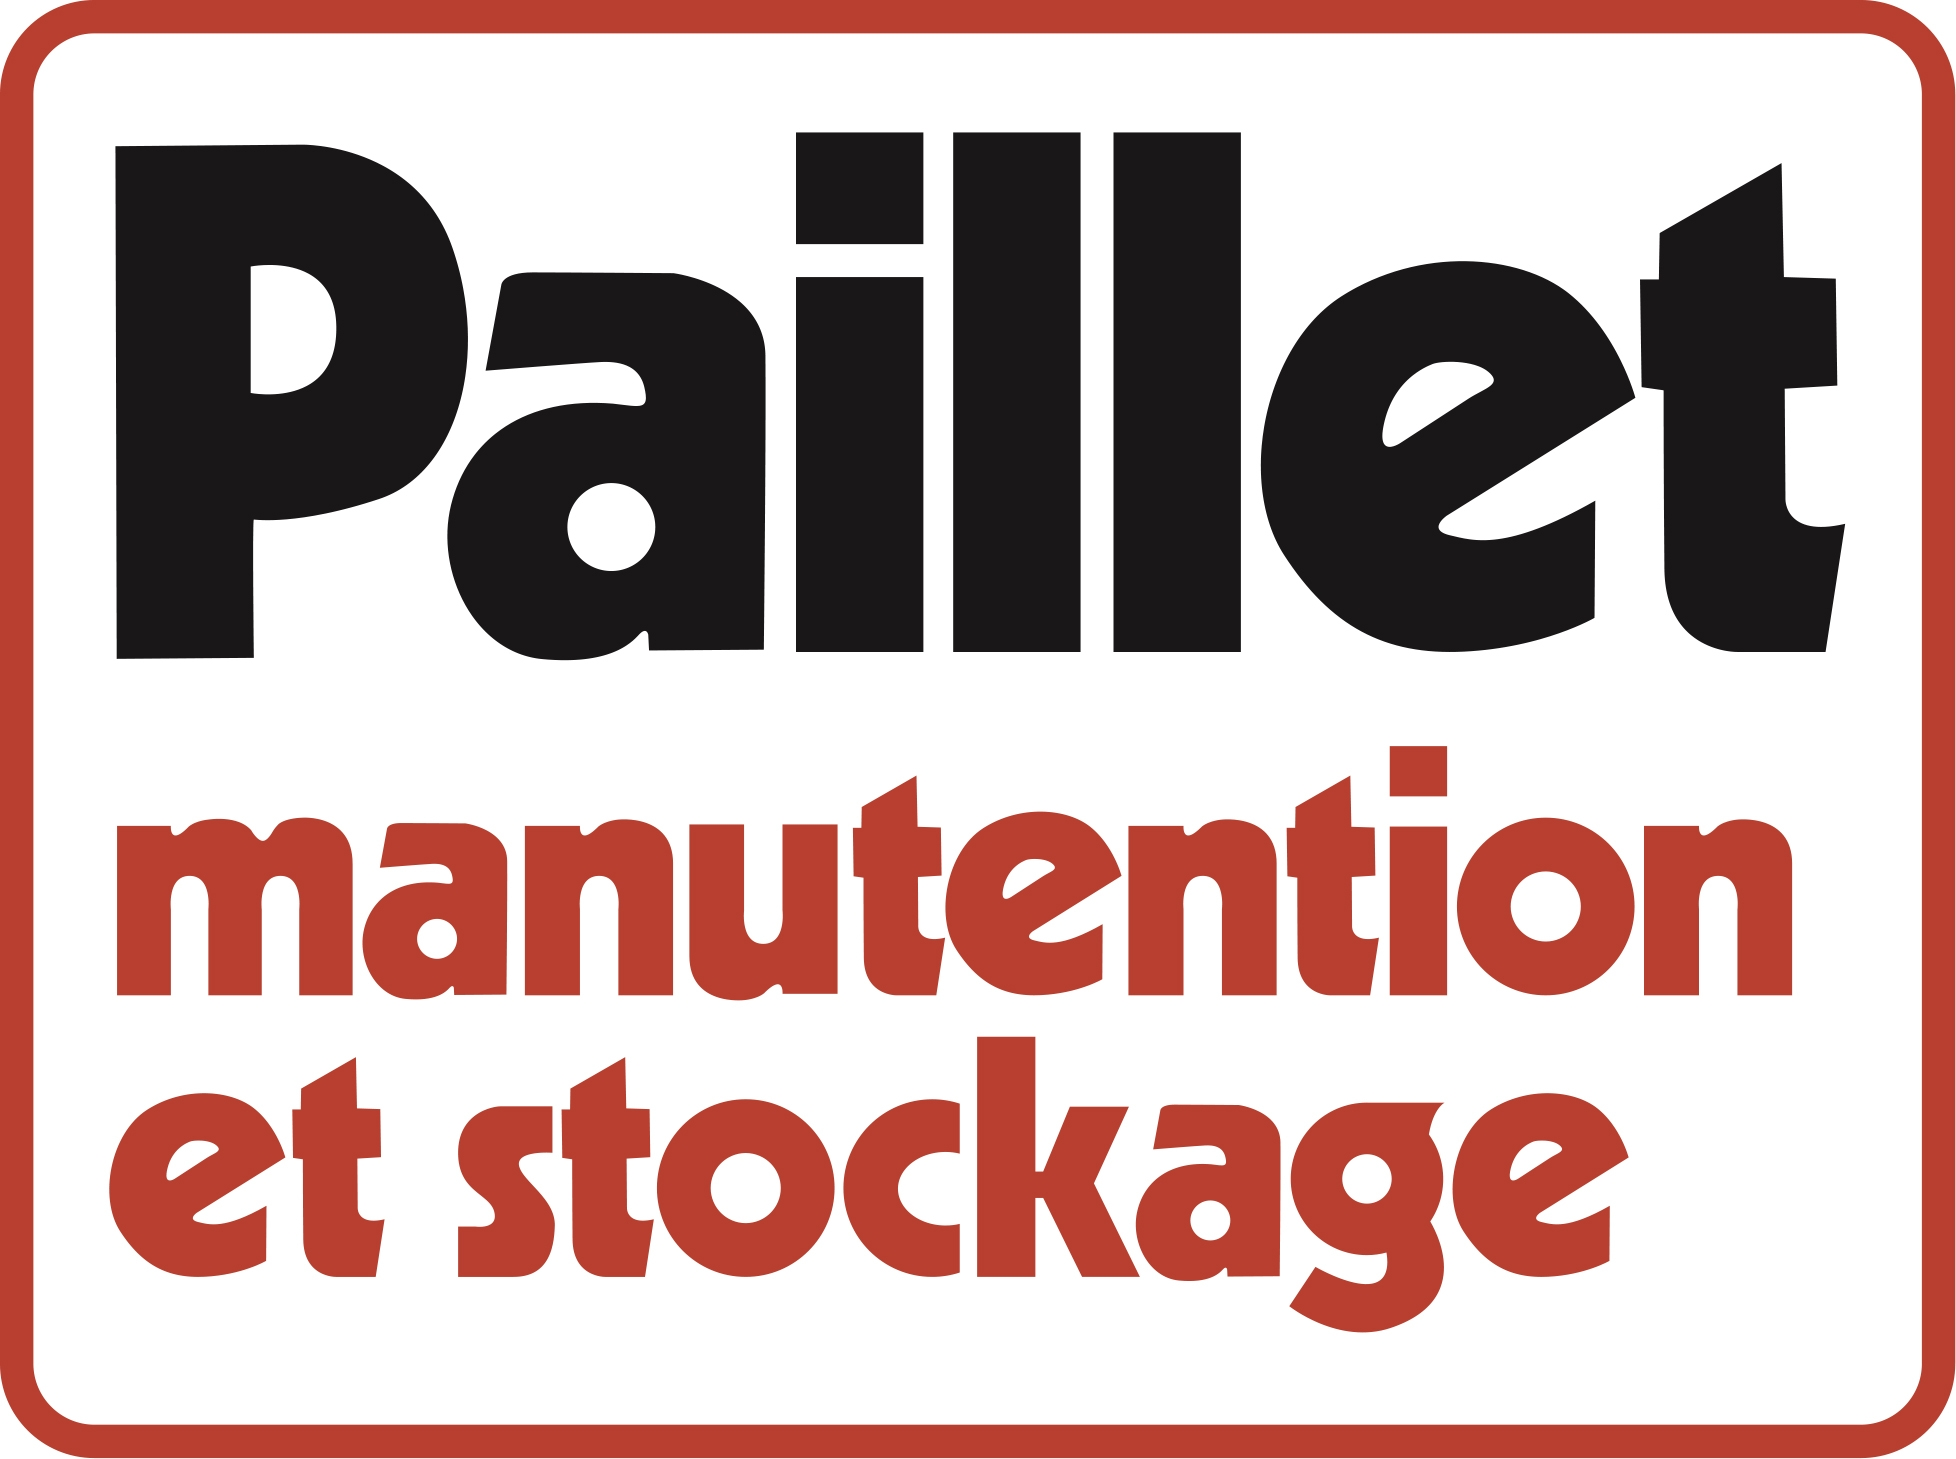 1580889651-paillet-manutention-stockage.jpg